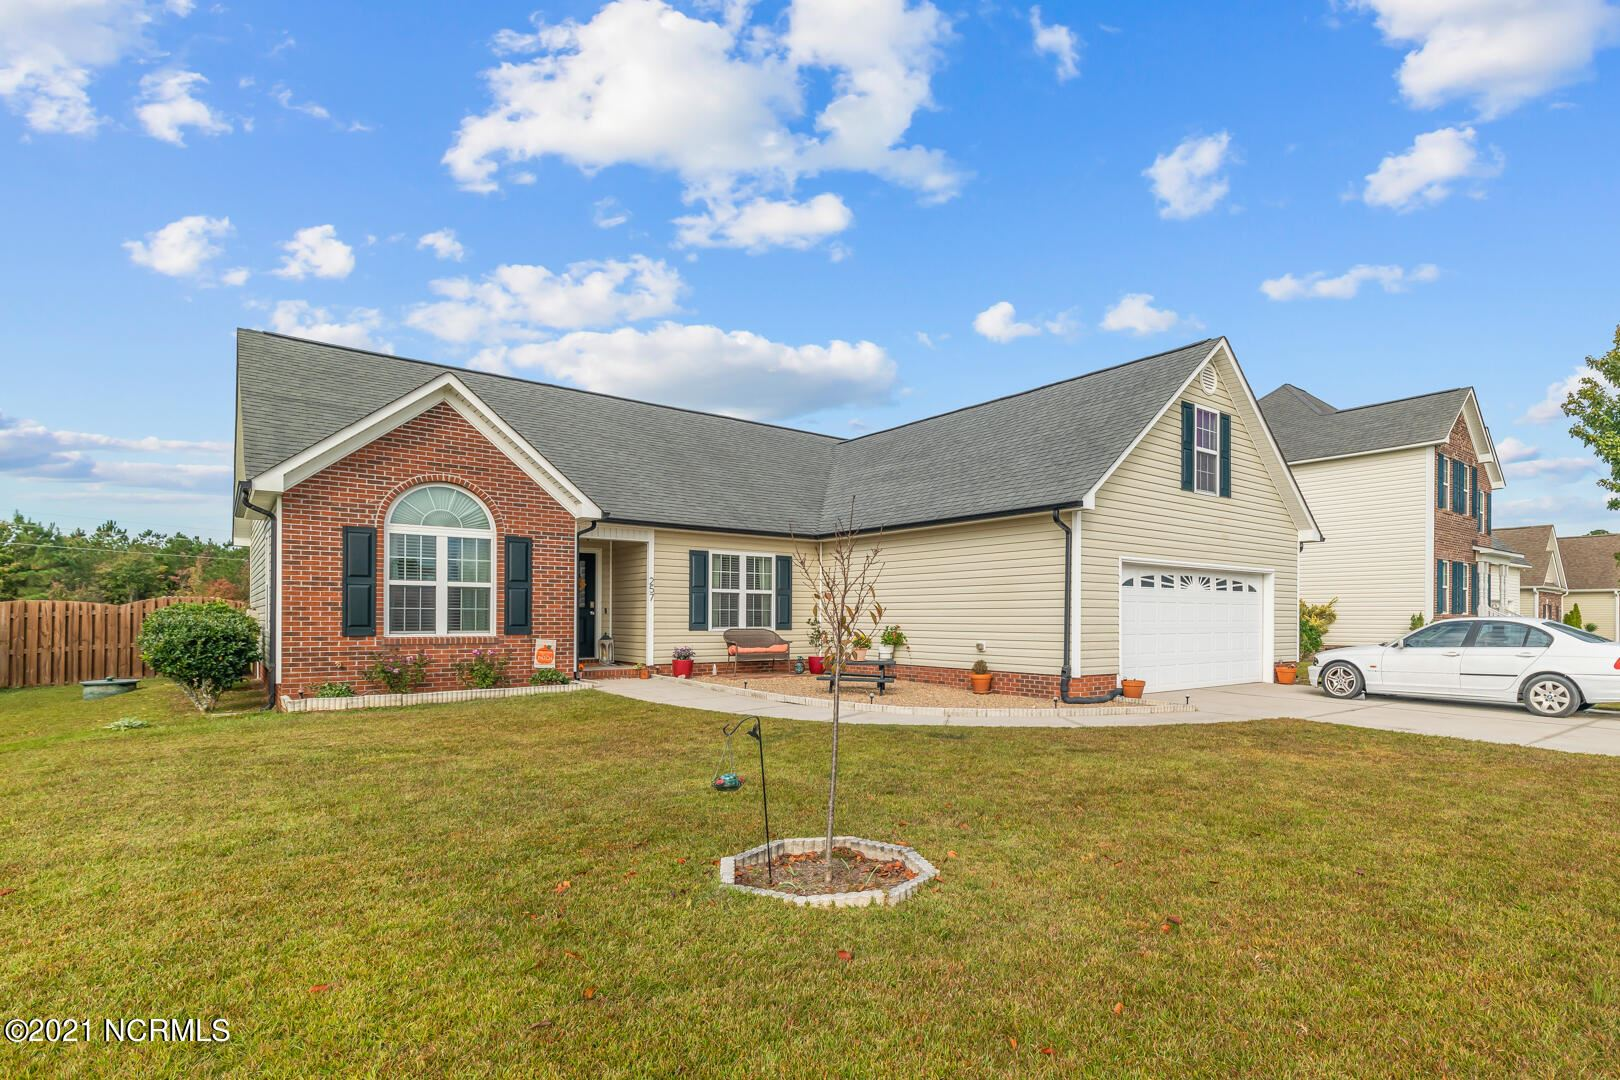 Photo of 257 Silver Hills Drive, Jacksonville, NC 28546 (MLS # 100295900)